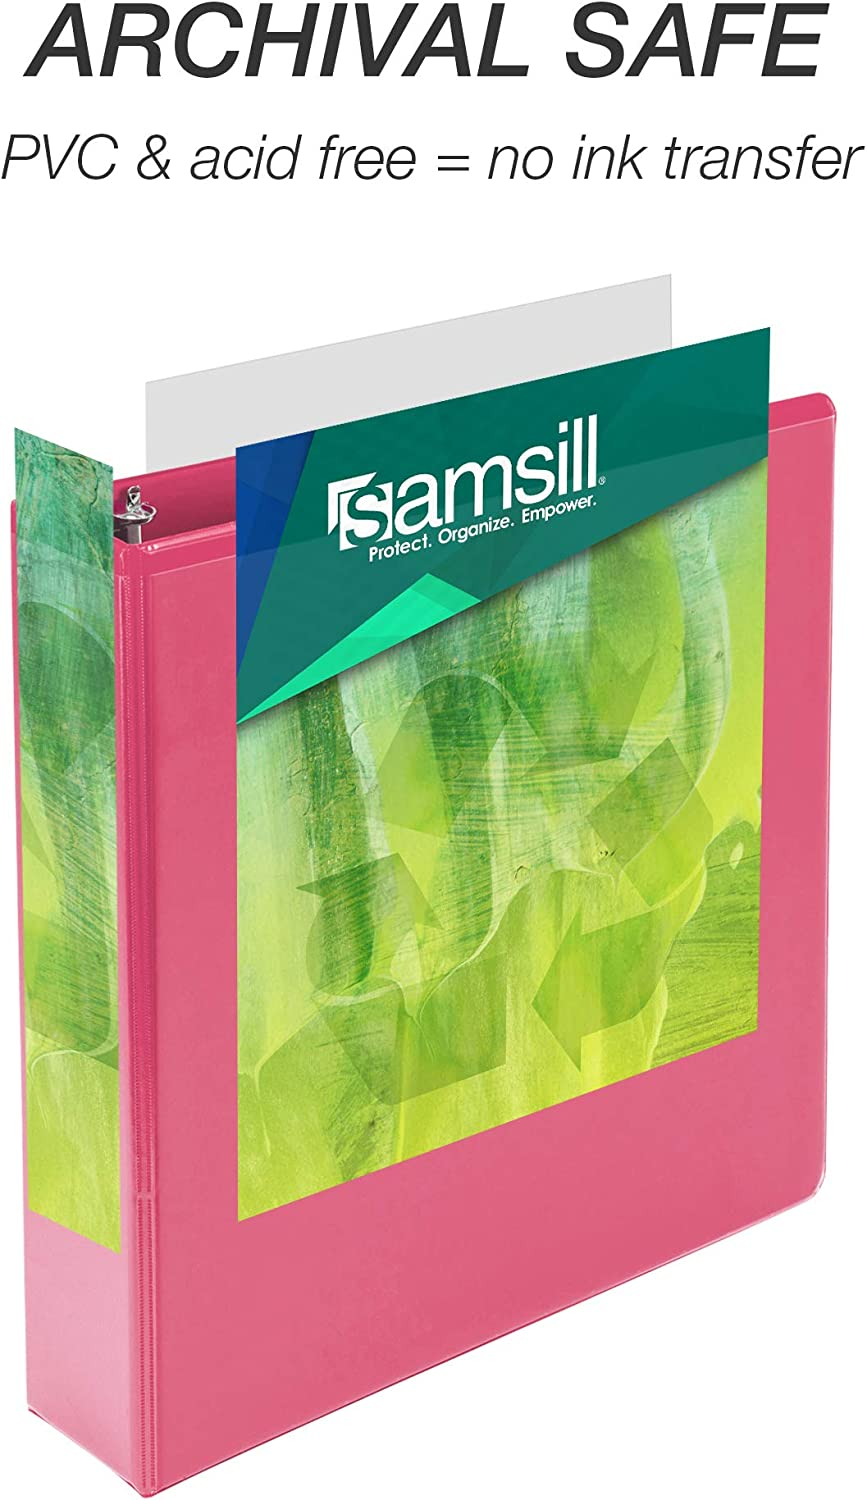 Samsill Earth's Choice Biobased Durable 3 Ring Binders, Fashion Clear View 2 Inch Binders, Up to 25% Plant Based Plastic, Assorted 4 Pack (MP48669) : Office Products